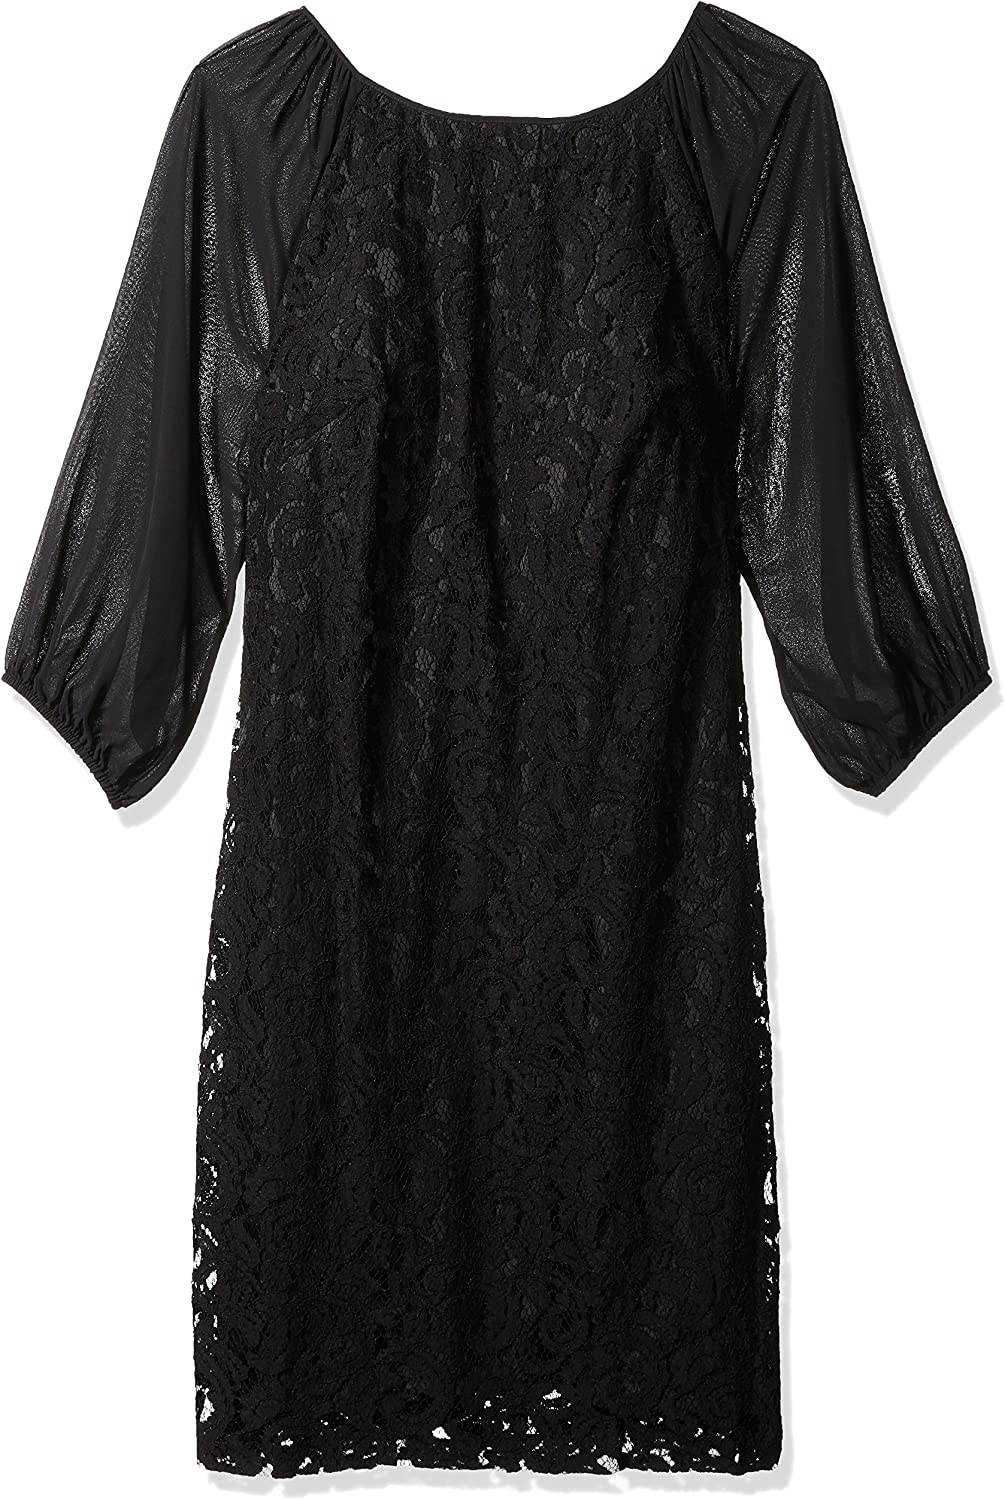 Adrianna Papell Womens Sheer Sleeve Lace Dress Plus Dress